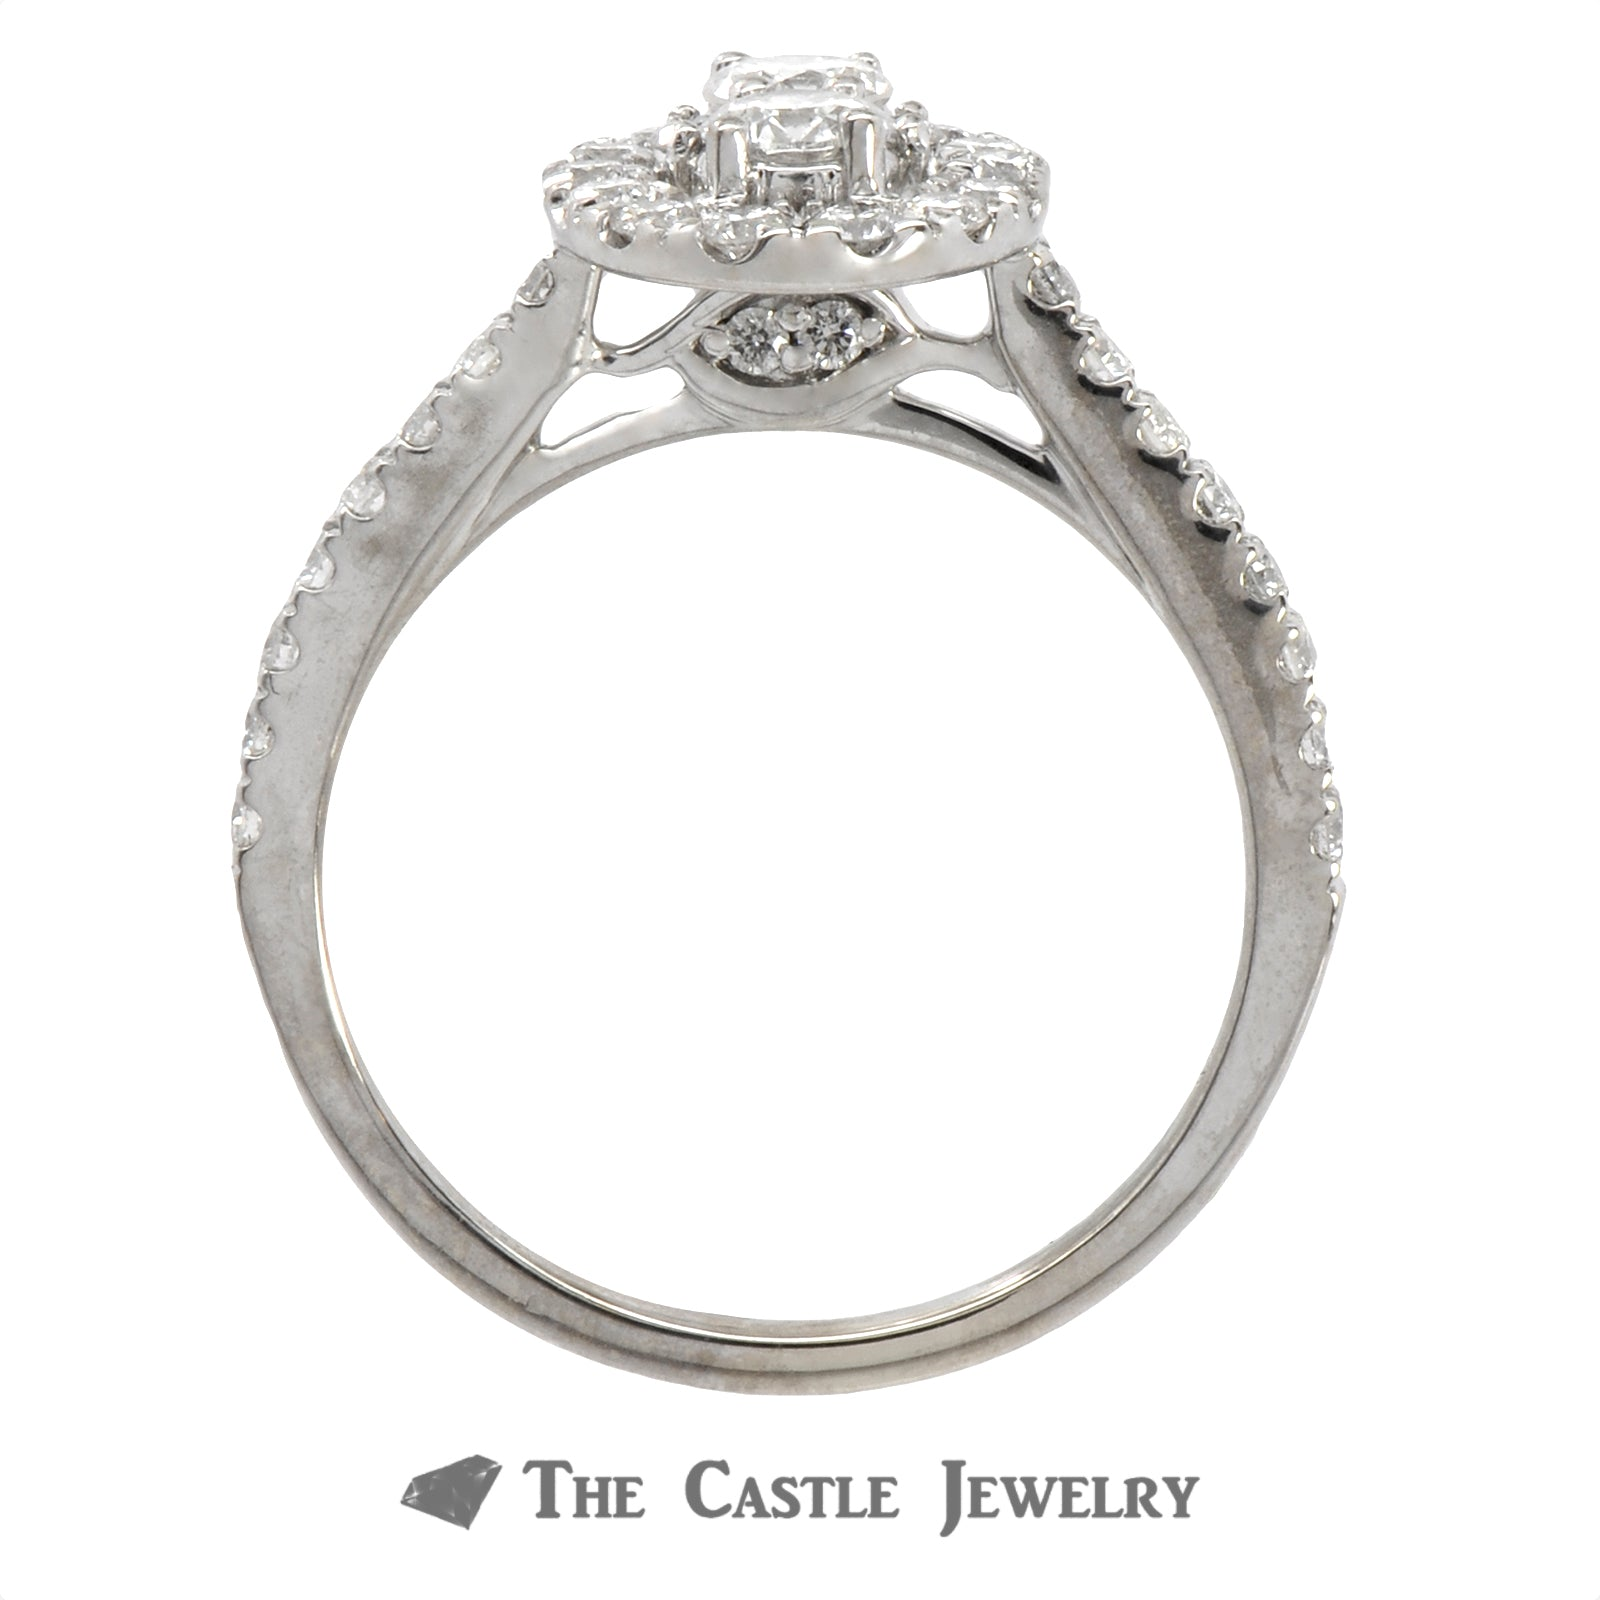 Double Diamond Halo Ever Us Engagement Ring with Diamond Accents in 14k White Gold-1